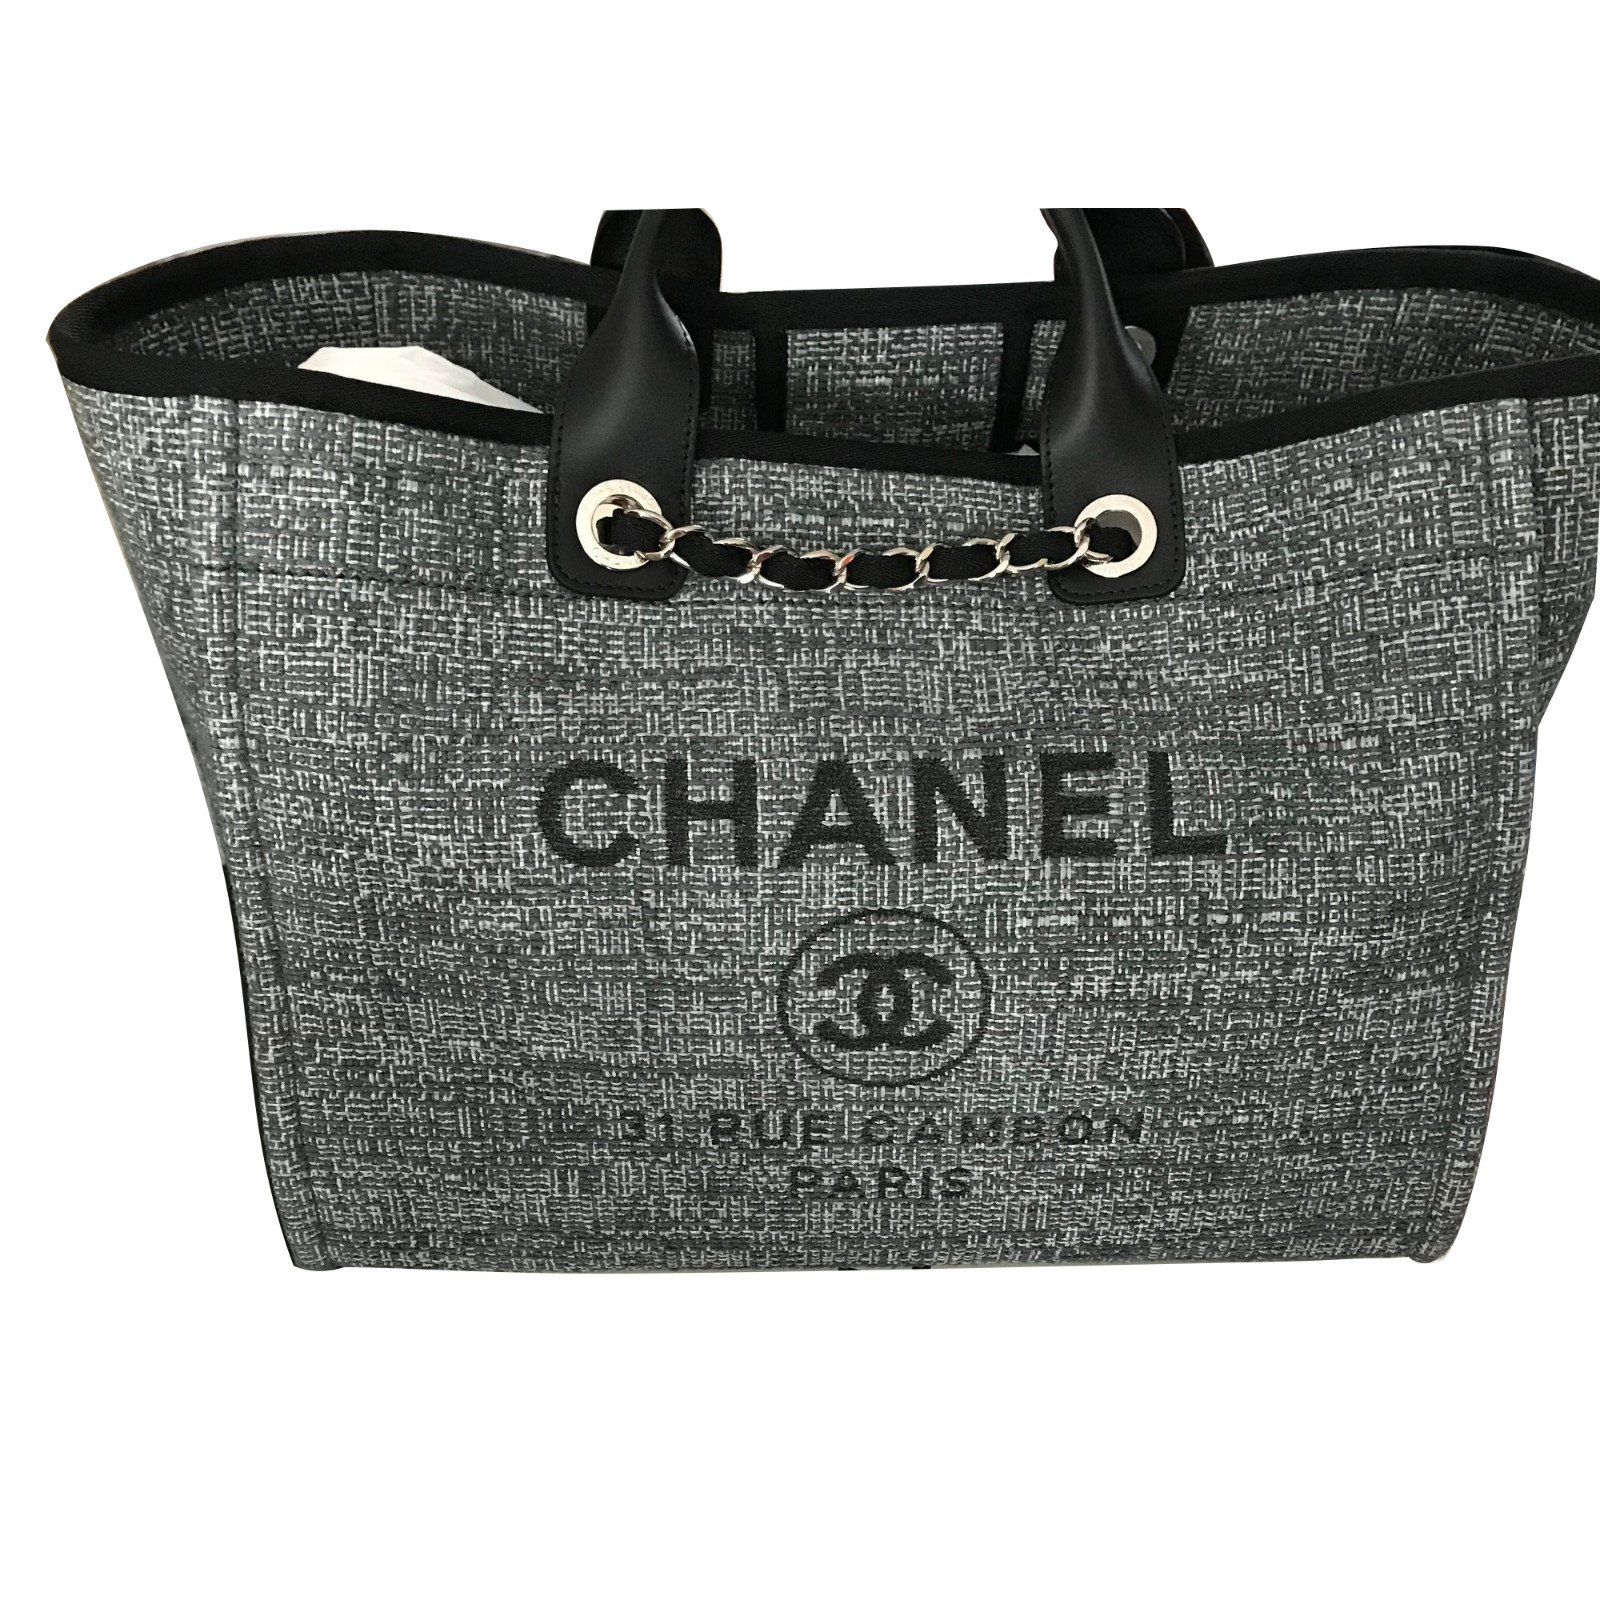 7e4ea450eff5 Chanel Chanel Deauville Large Tote Bag NEW 2018 - Grey with Glitter!  Handbags Cloth Grey